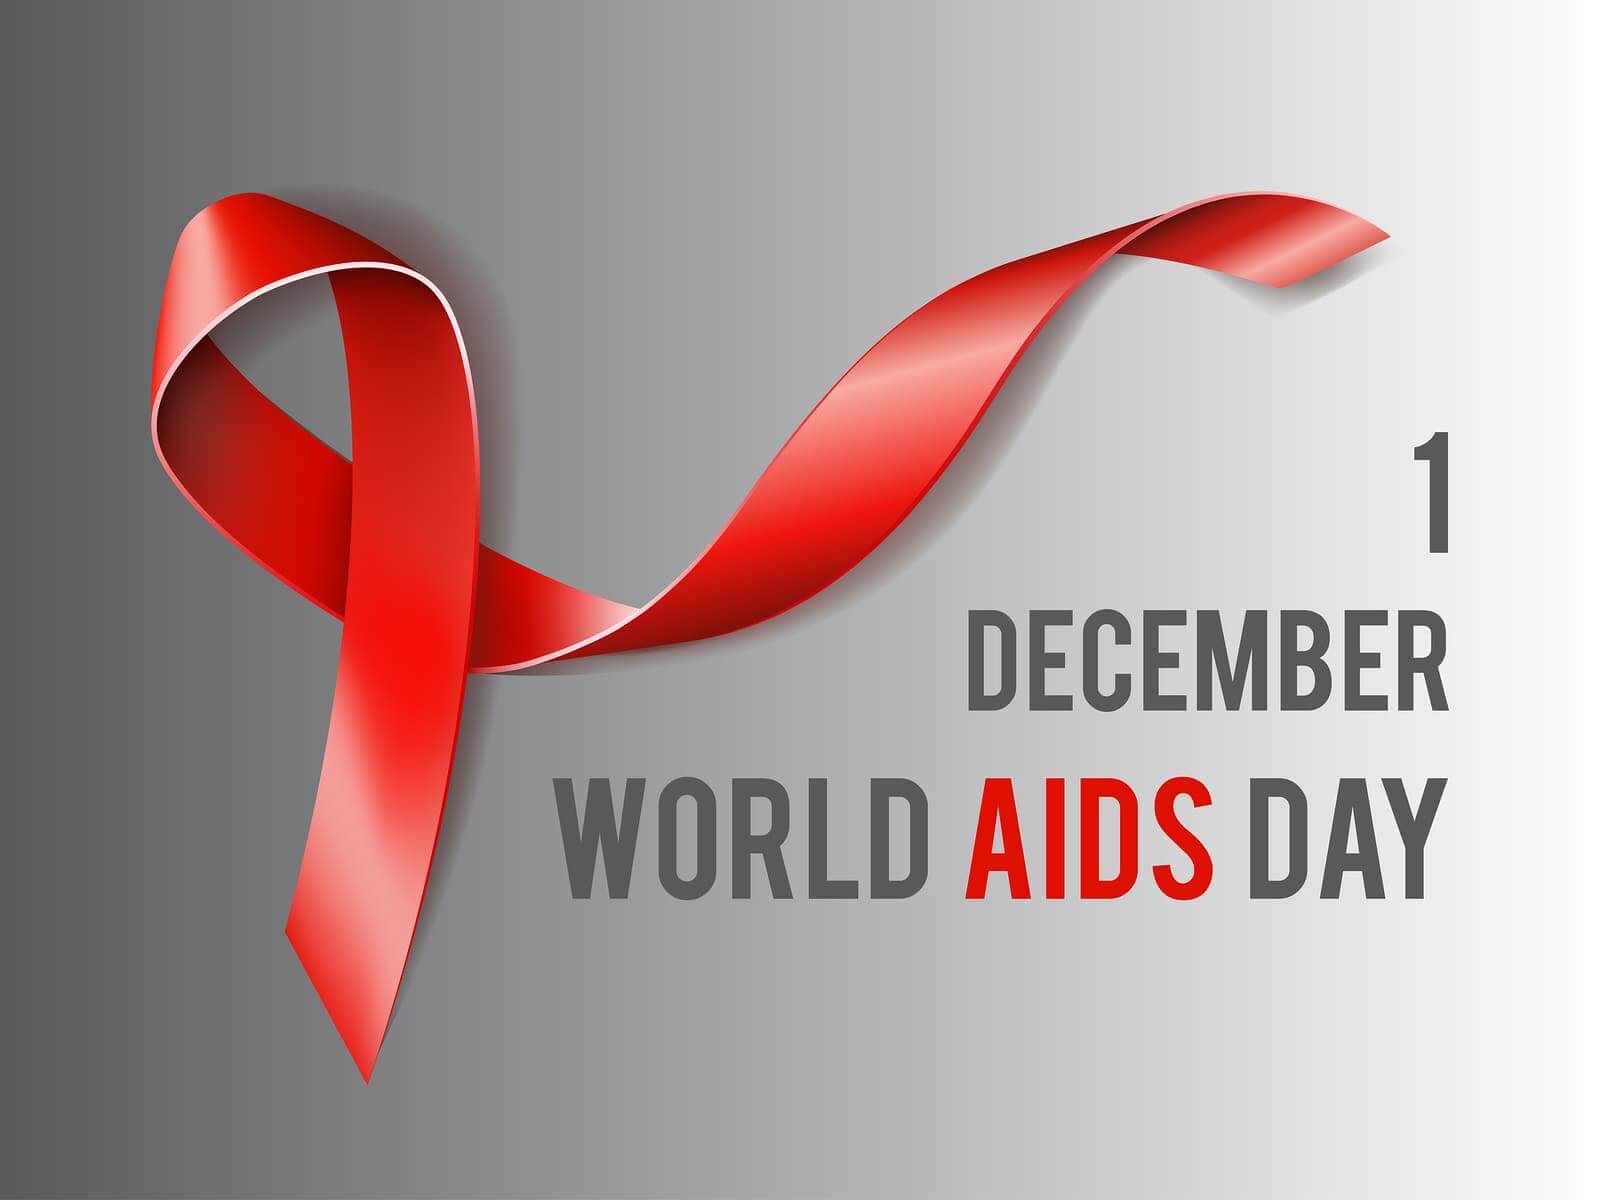 world aids day backgrounds - photo #16